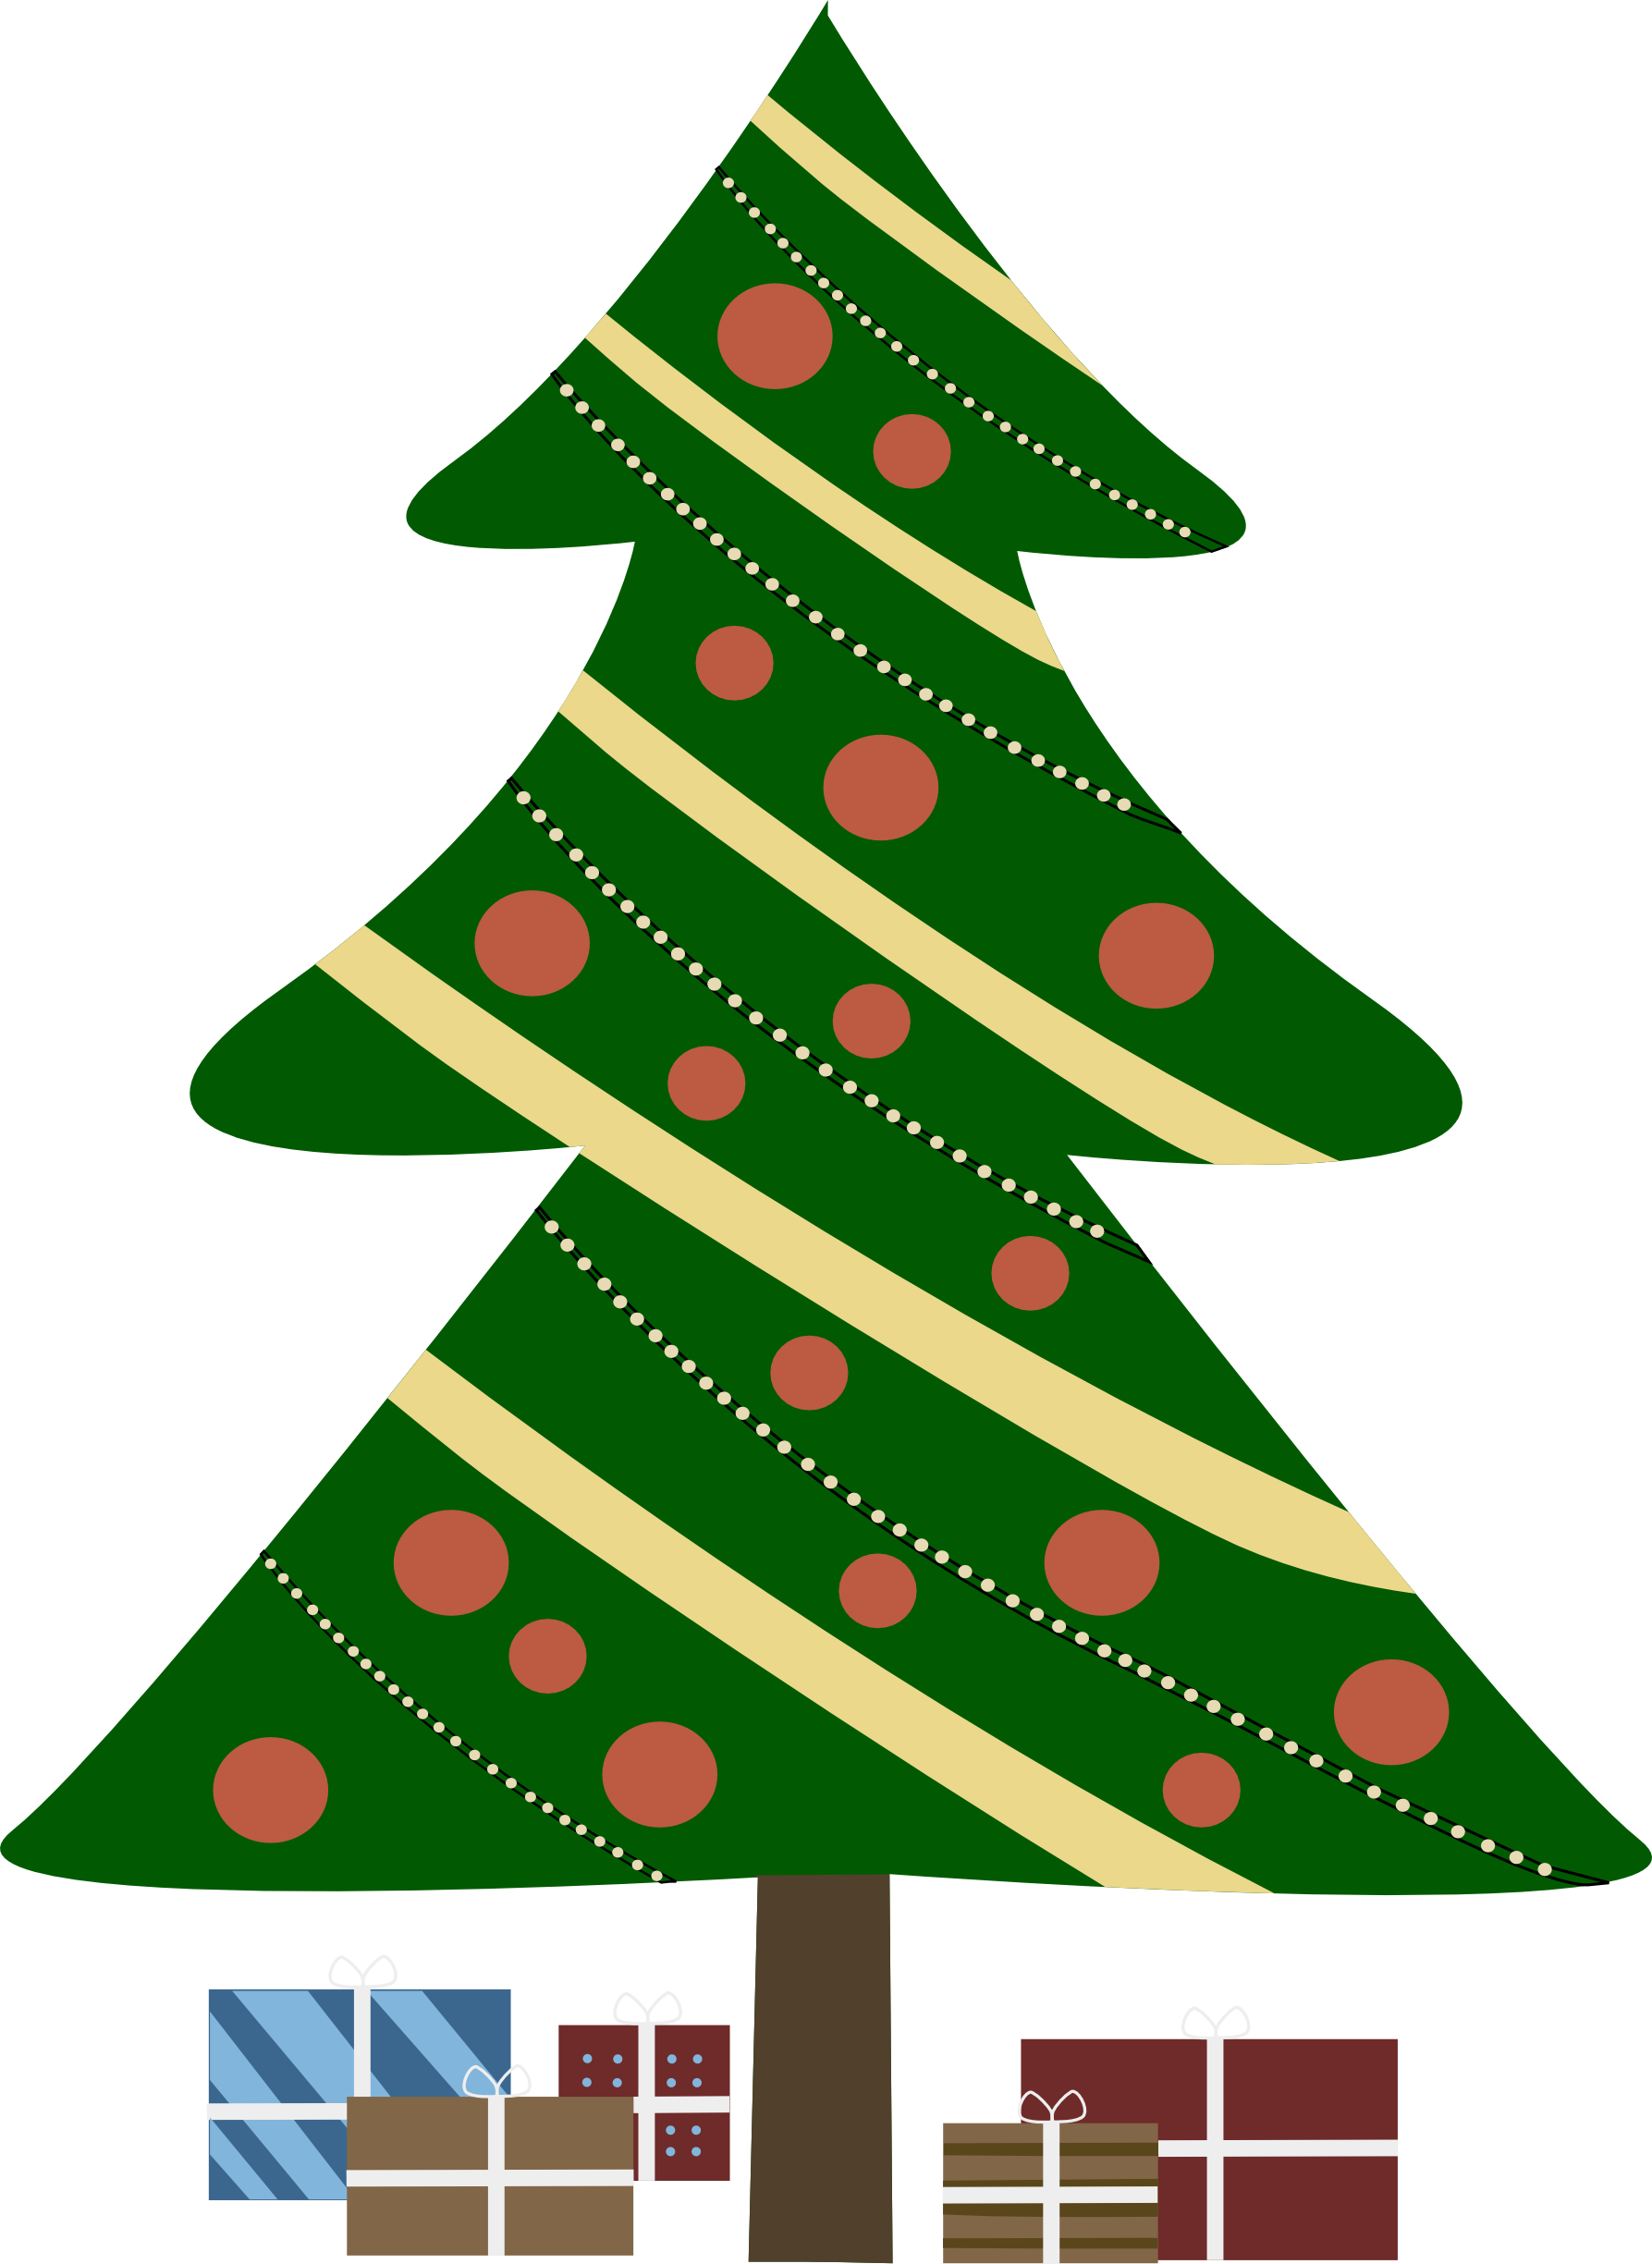 Christmas Tree Cartoon Clip Art - Cliparts.co